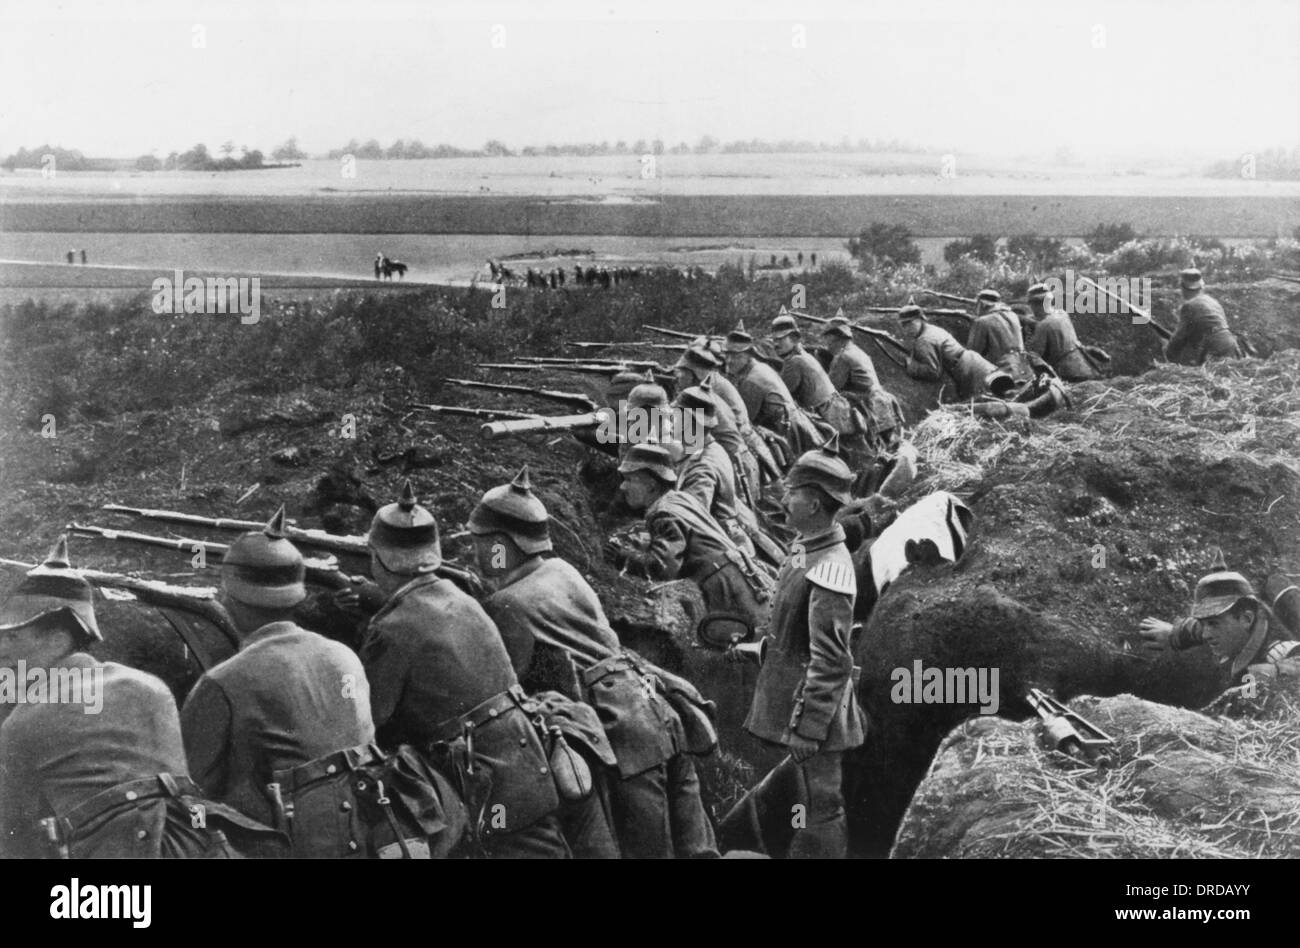 German trenches WWI - Stock Image